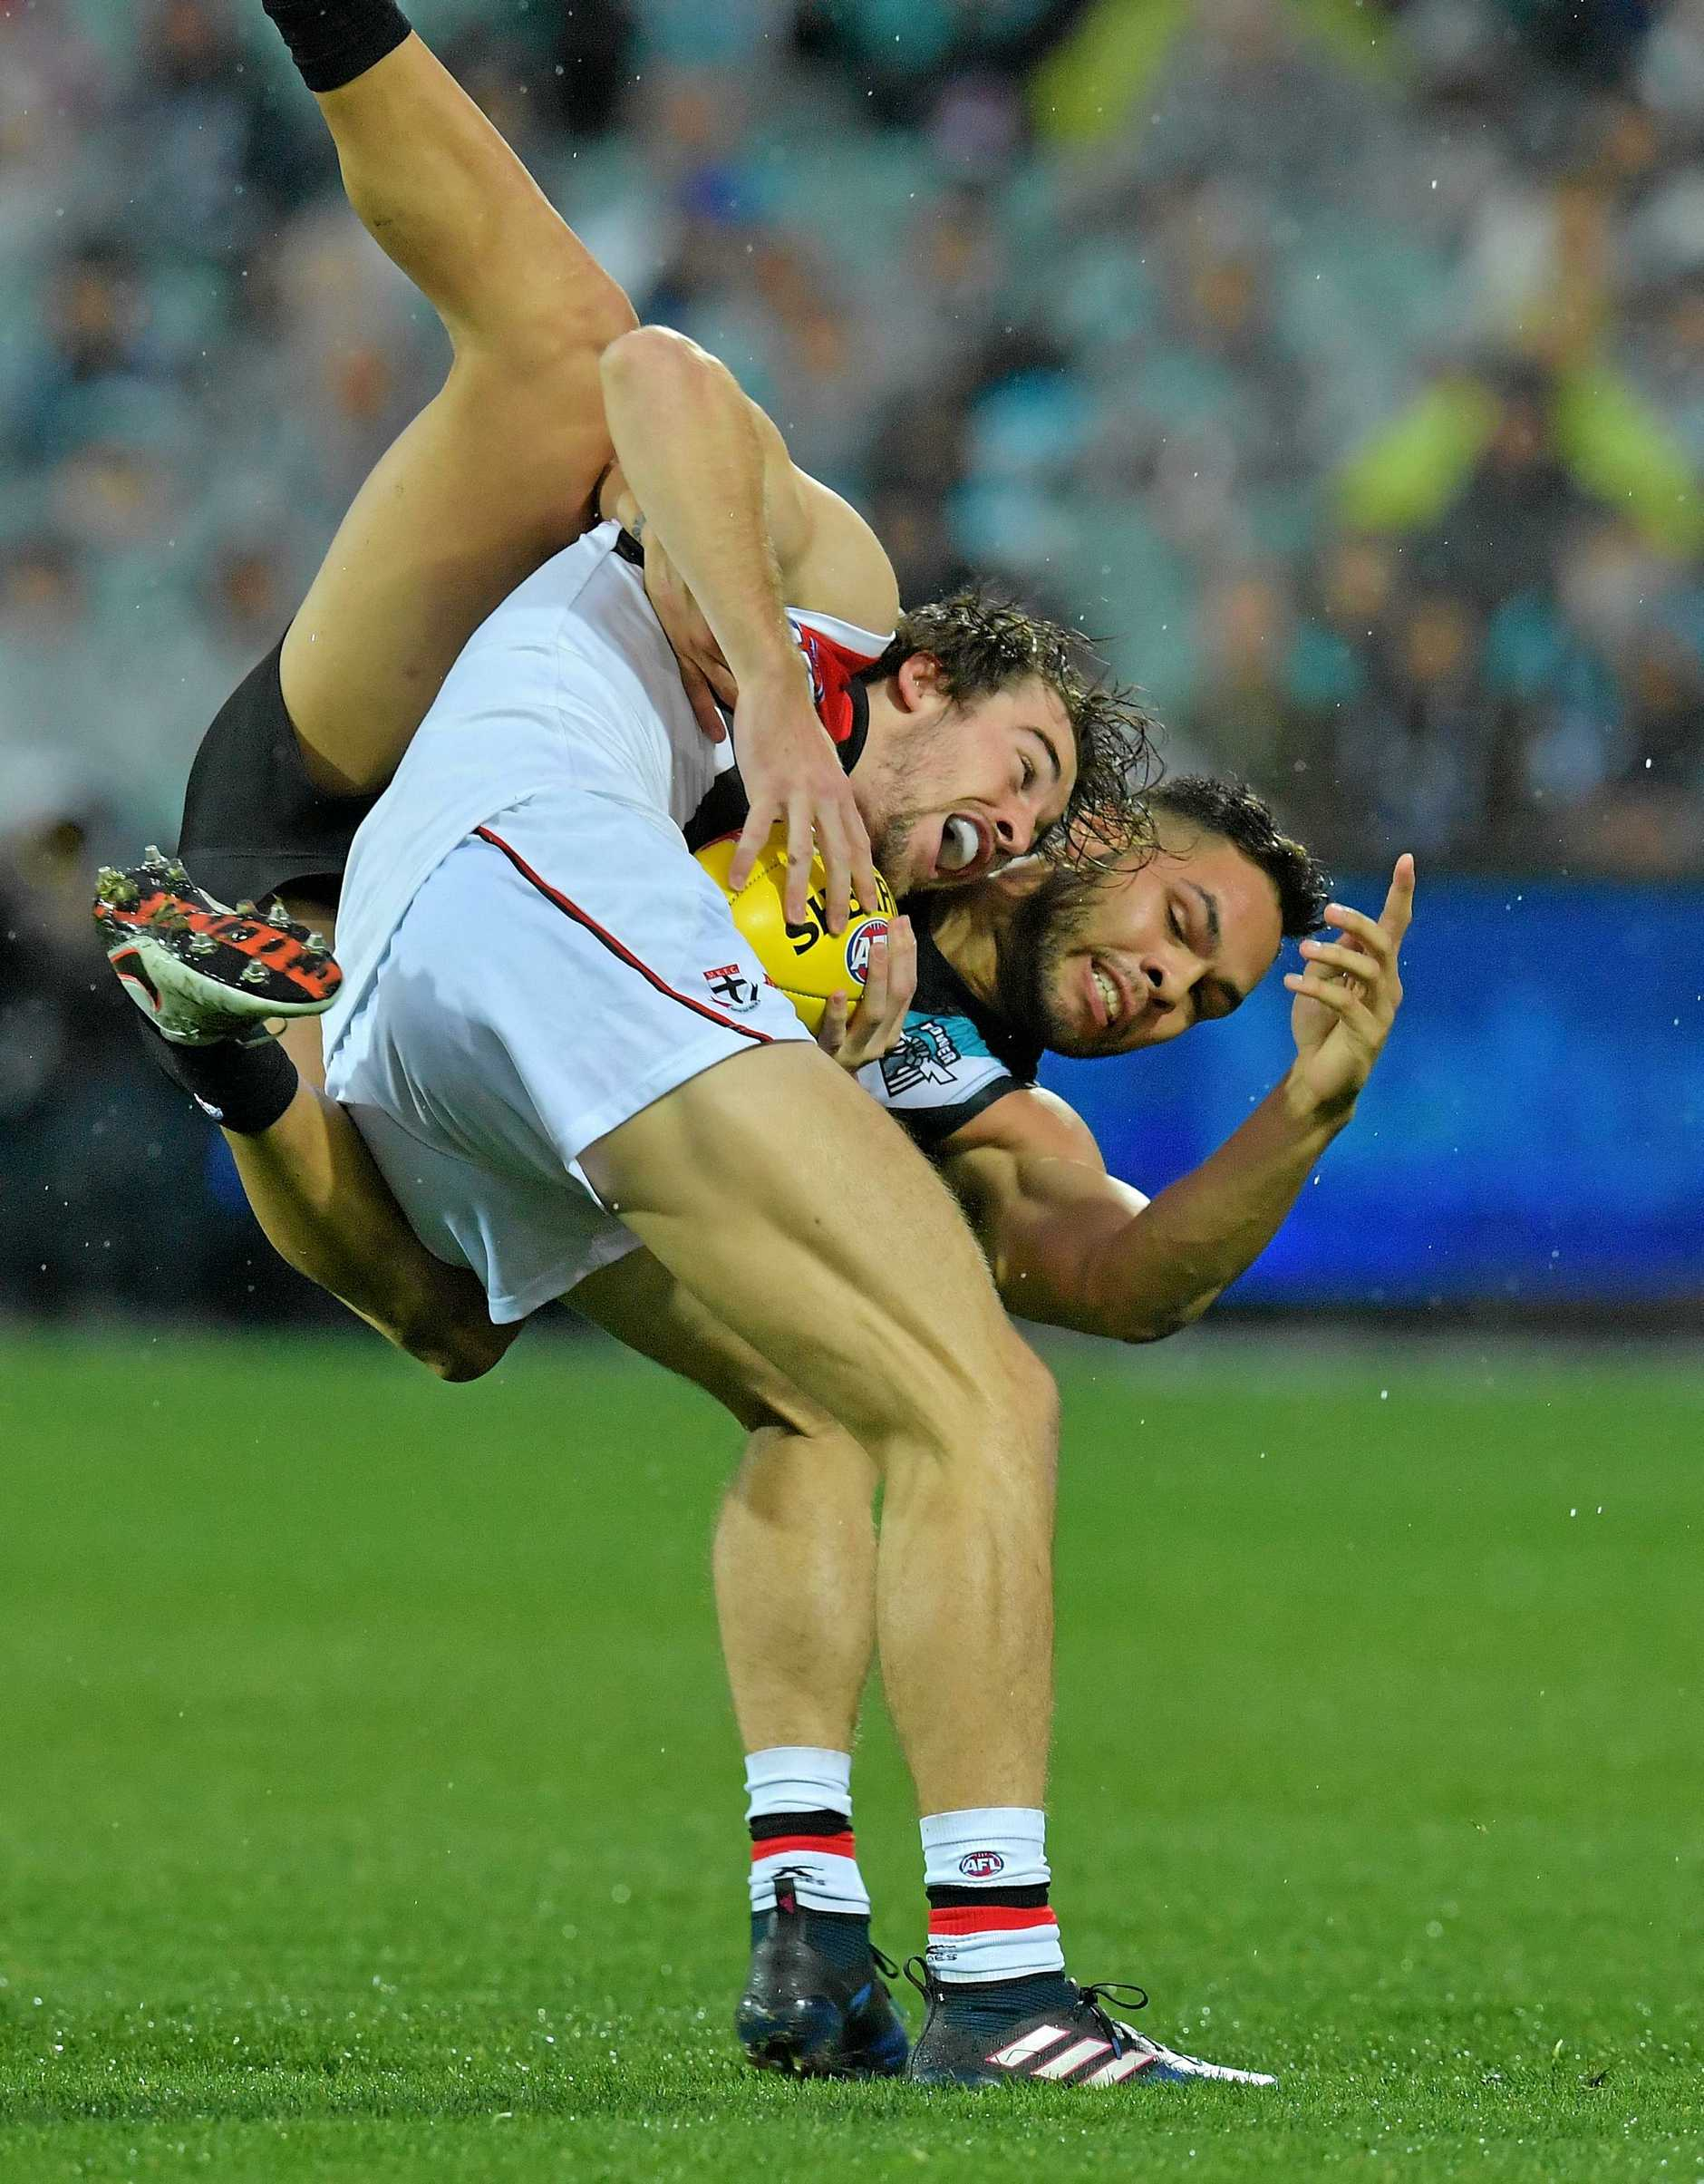 Jarman Impey of the Power (right) and Daniel McKenzie of the Saints contest the ball during the Round 19 AFL match between the Port Adelaide Power and the St Kilda Saints at Adelaide Oval in Adelaide, Saturday July 29, 2017. (AAP Image/David Mariuz) NO ARCHIVING, EDITORIAL USE ONLY